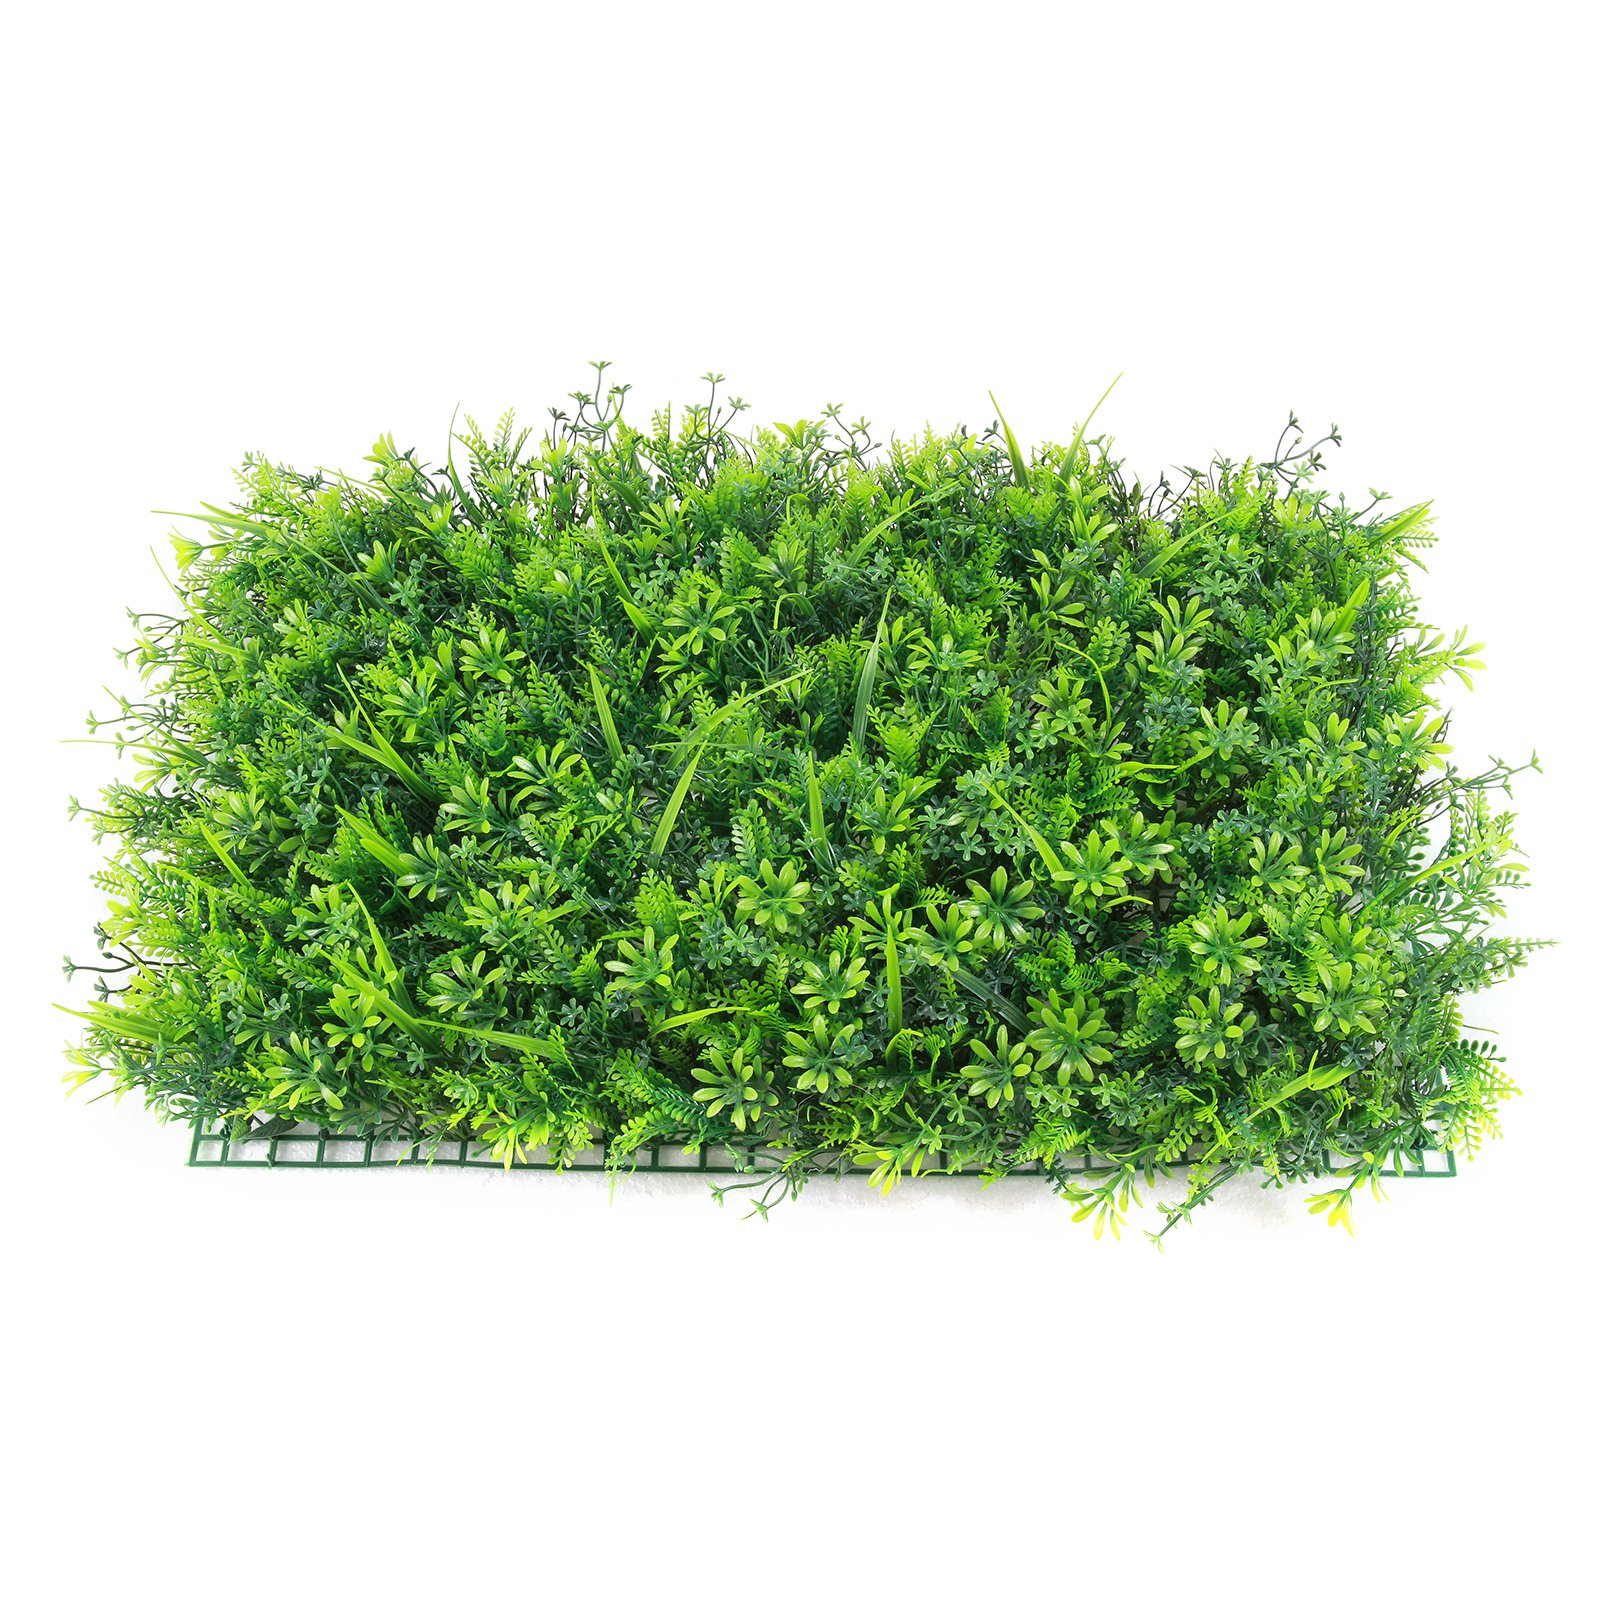 Baisidai Artificial Hedge Plant Privacy Fence Screen Greenery Panels for Both Outdoor or Indoor, garden or backyard home decorations (12pcs Pack, #028)